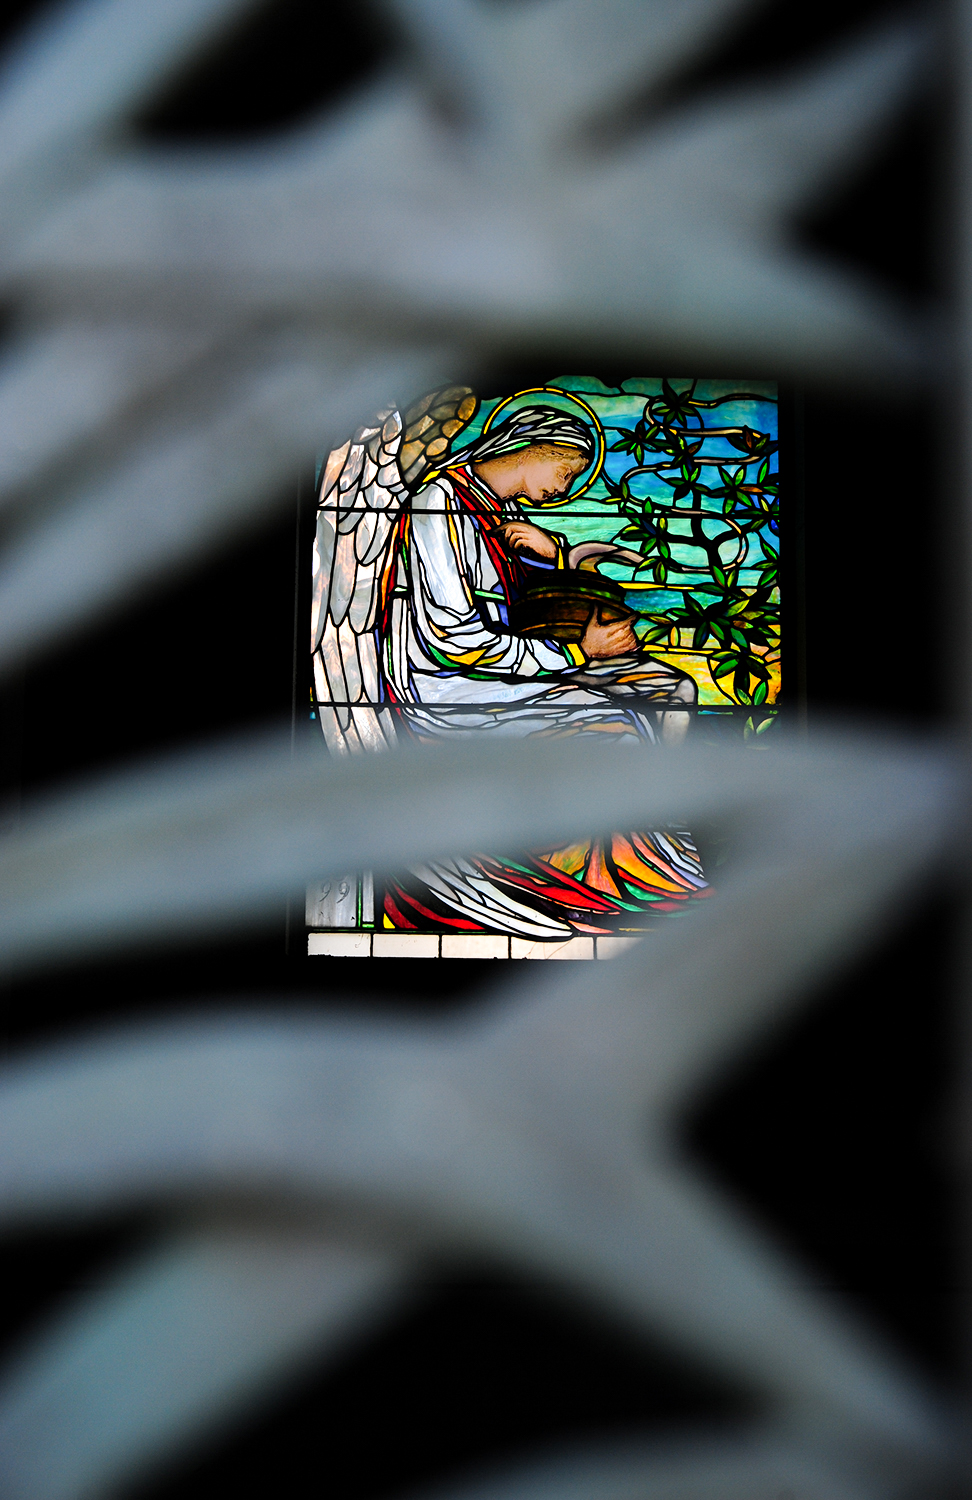 Stained glass inside of a mausoleum / Image: Melissa Doss Sliney